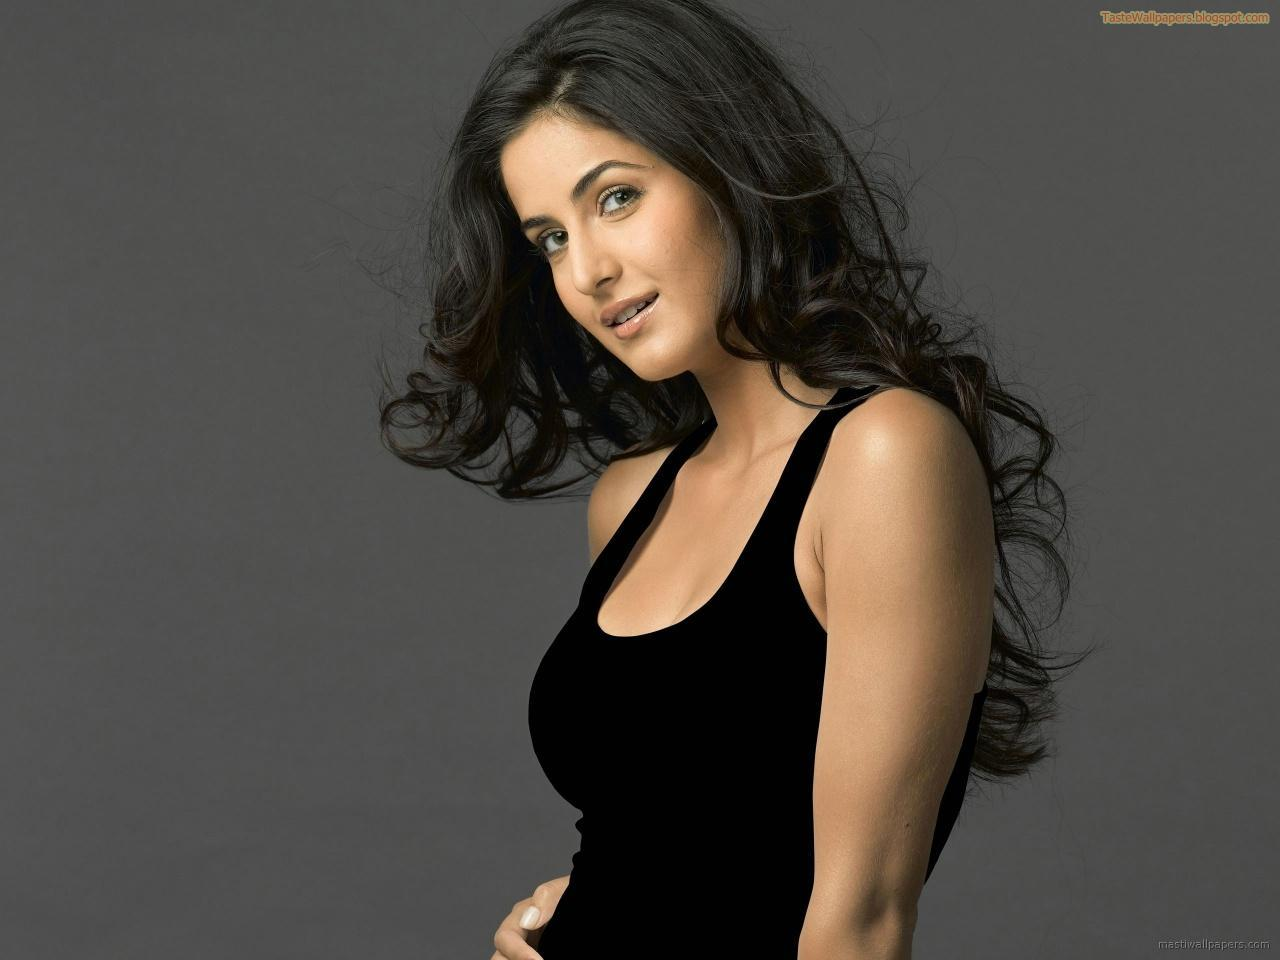 Bollywood Katrina Kaif Hot Hd Wallpapers 2012-4227